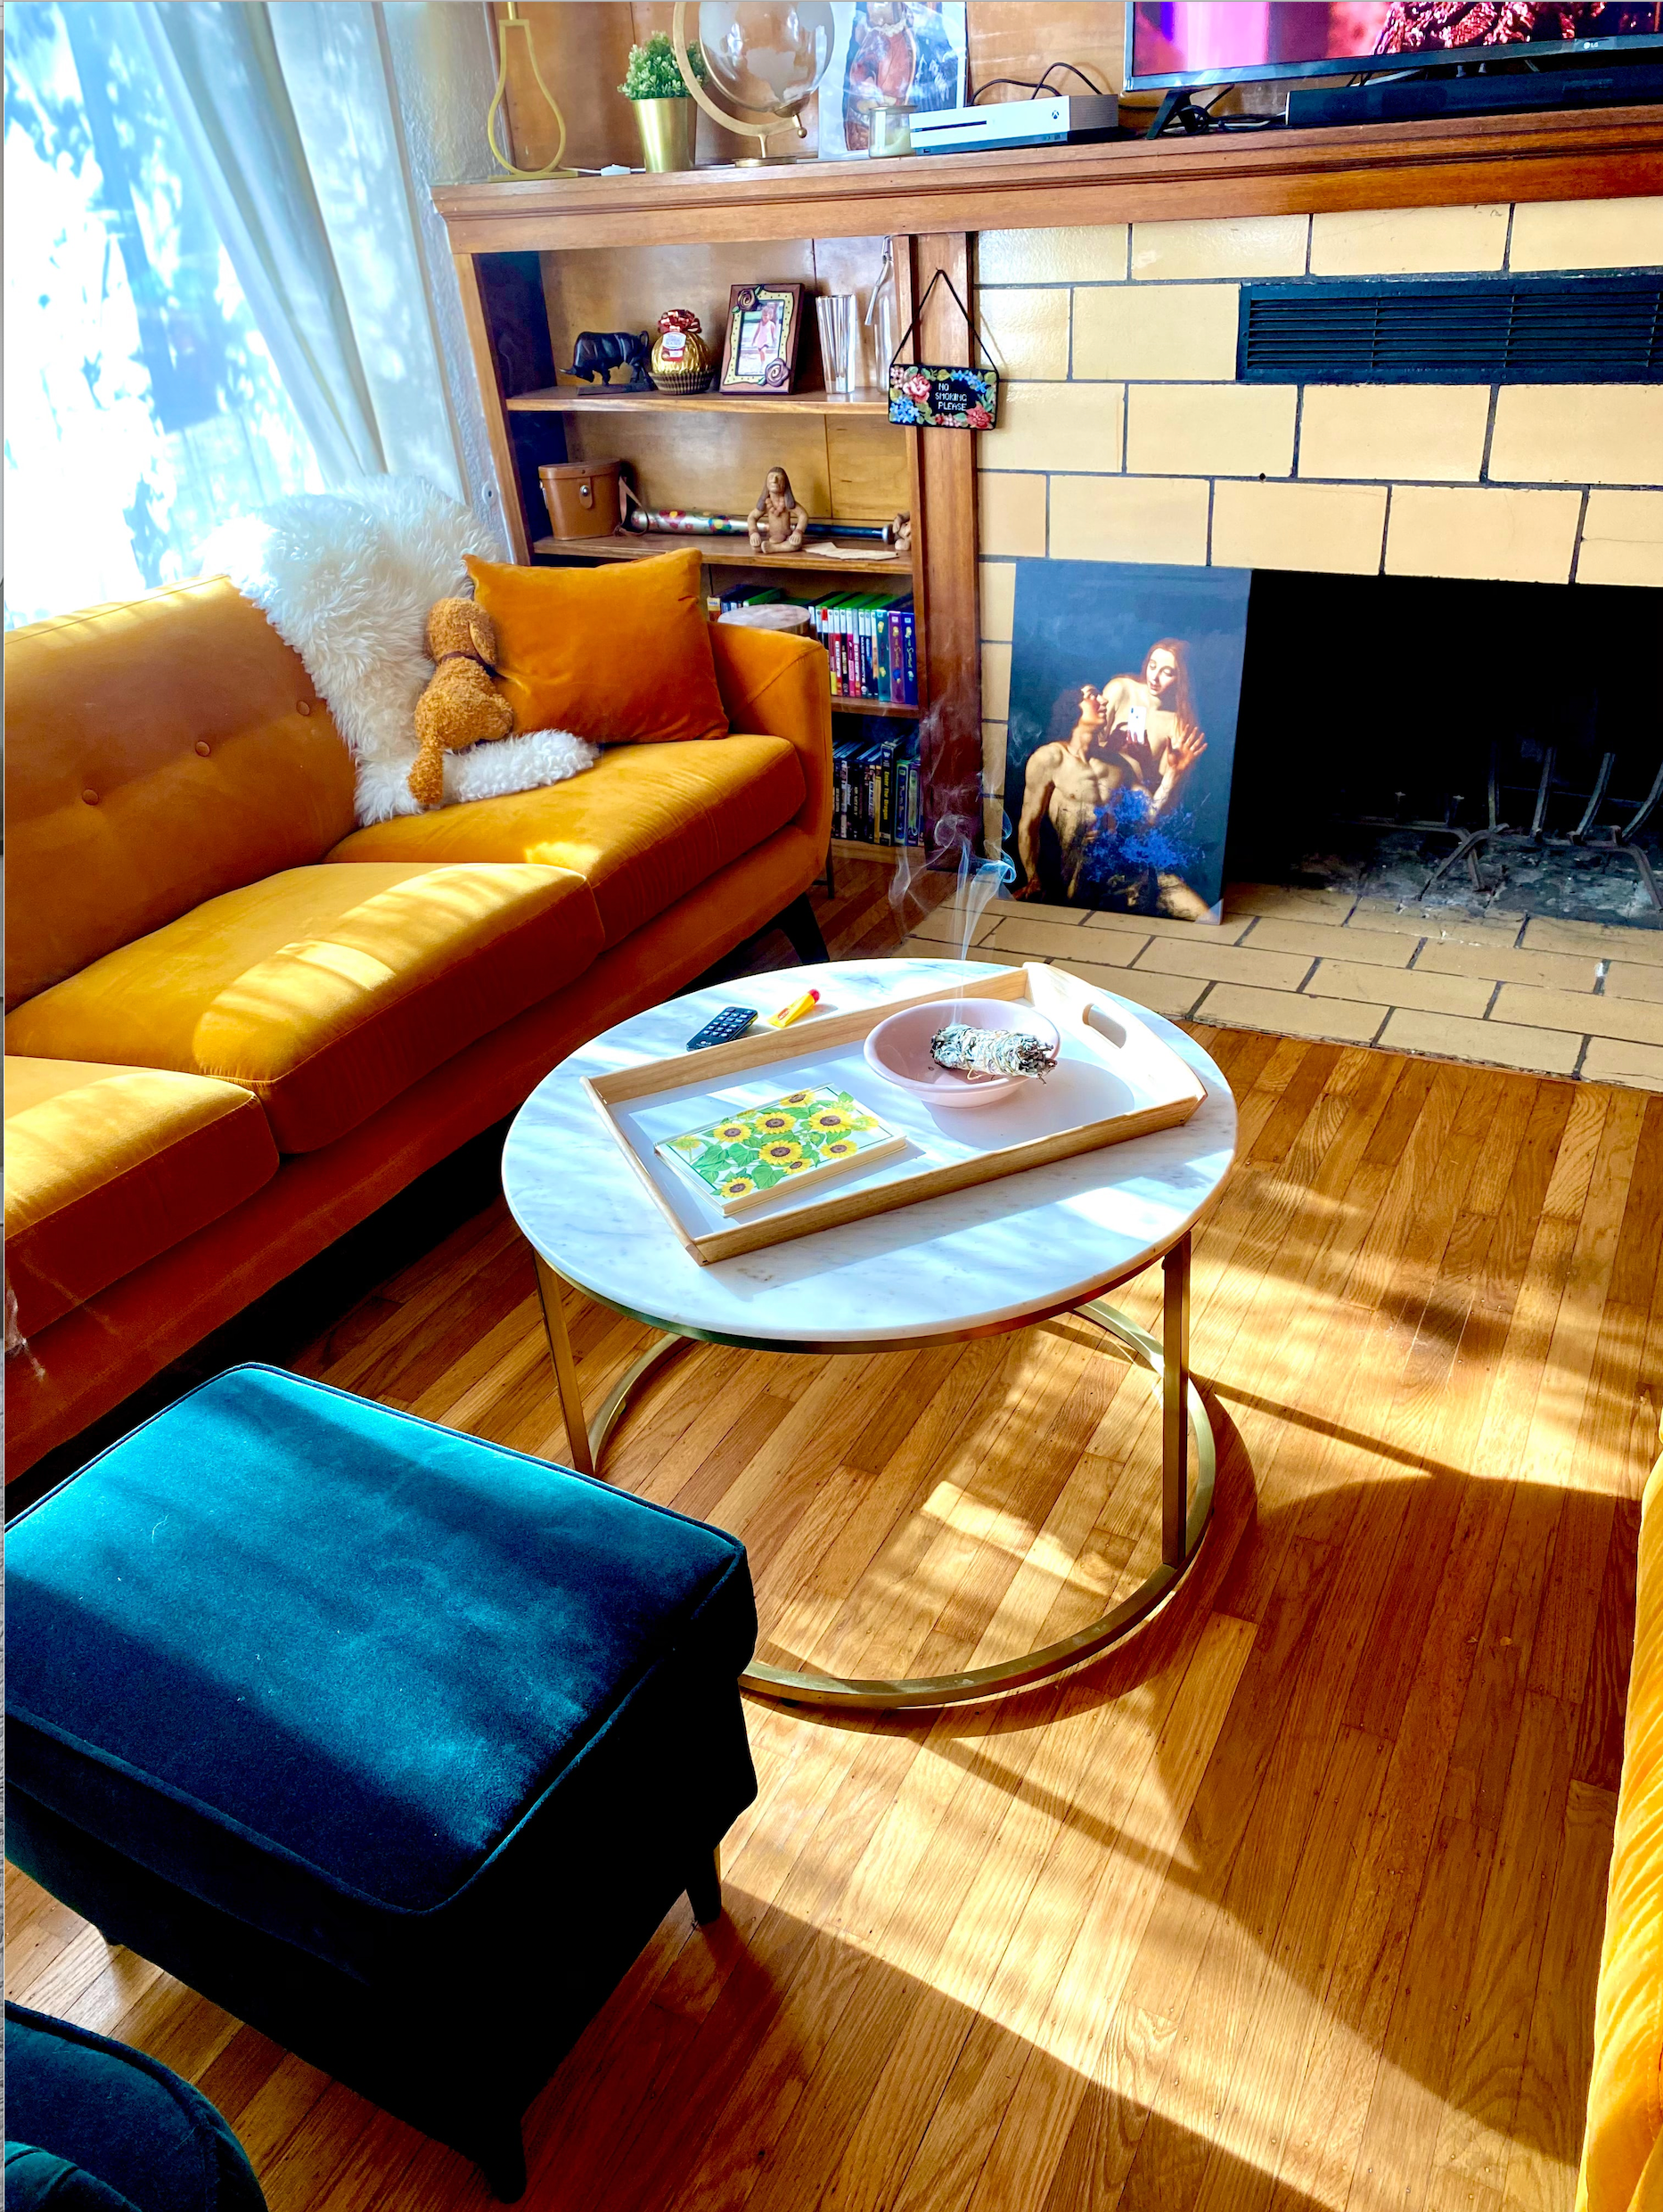 A colorful living room with a coffee table decor that includes a dining tray with a book and bowl for burning incense